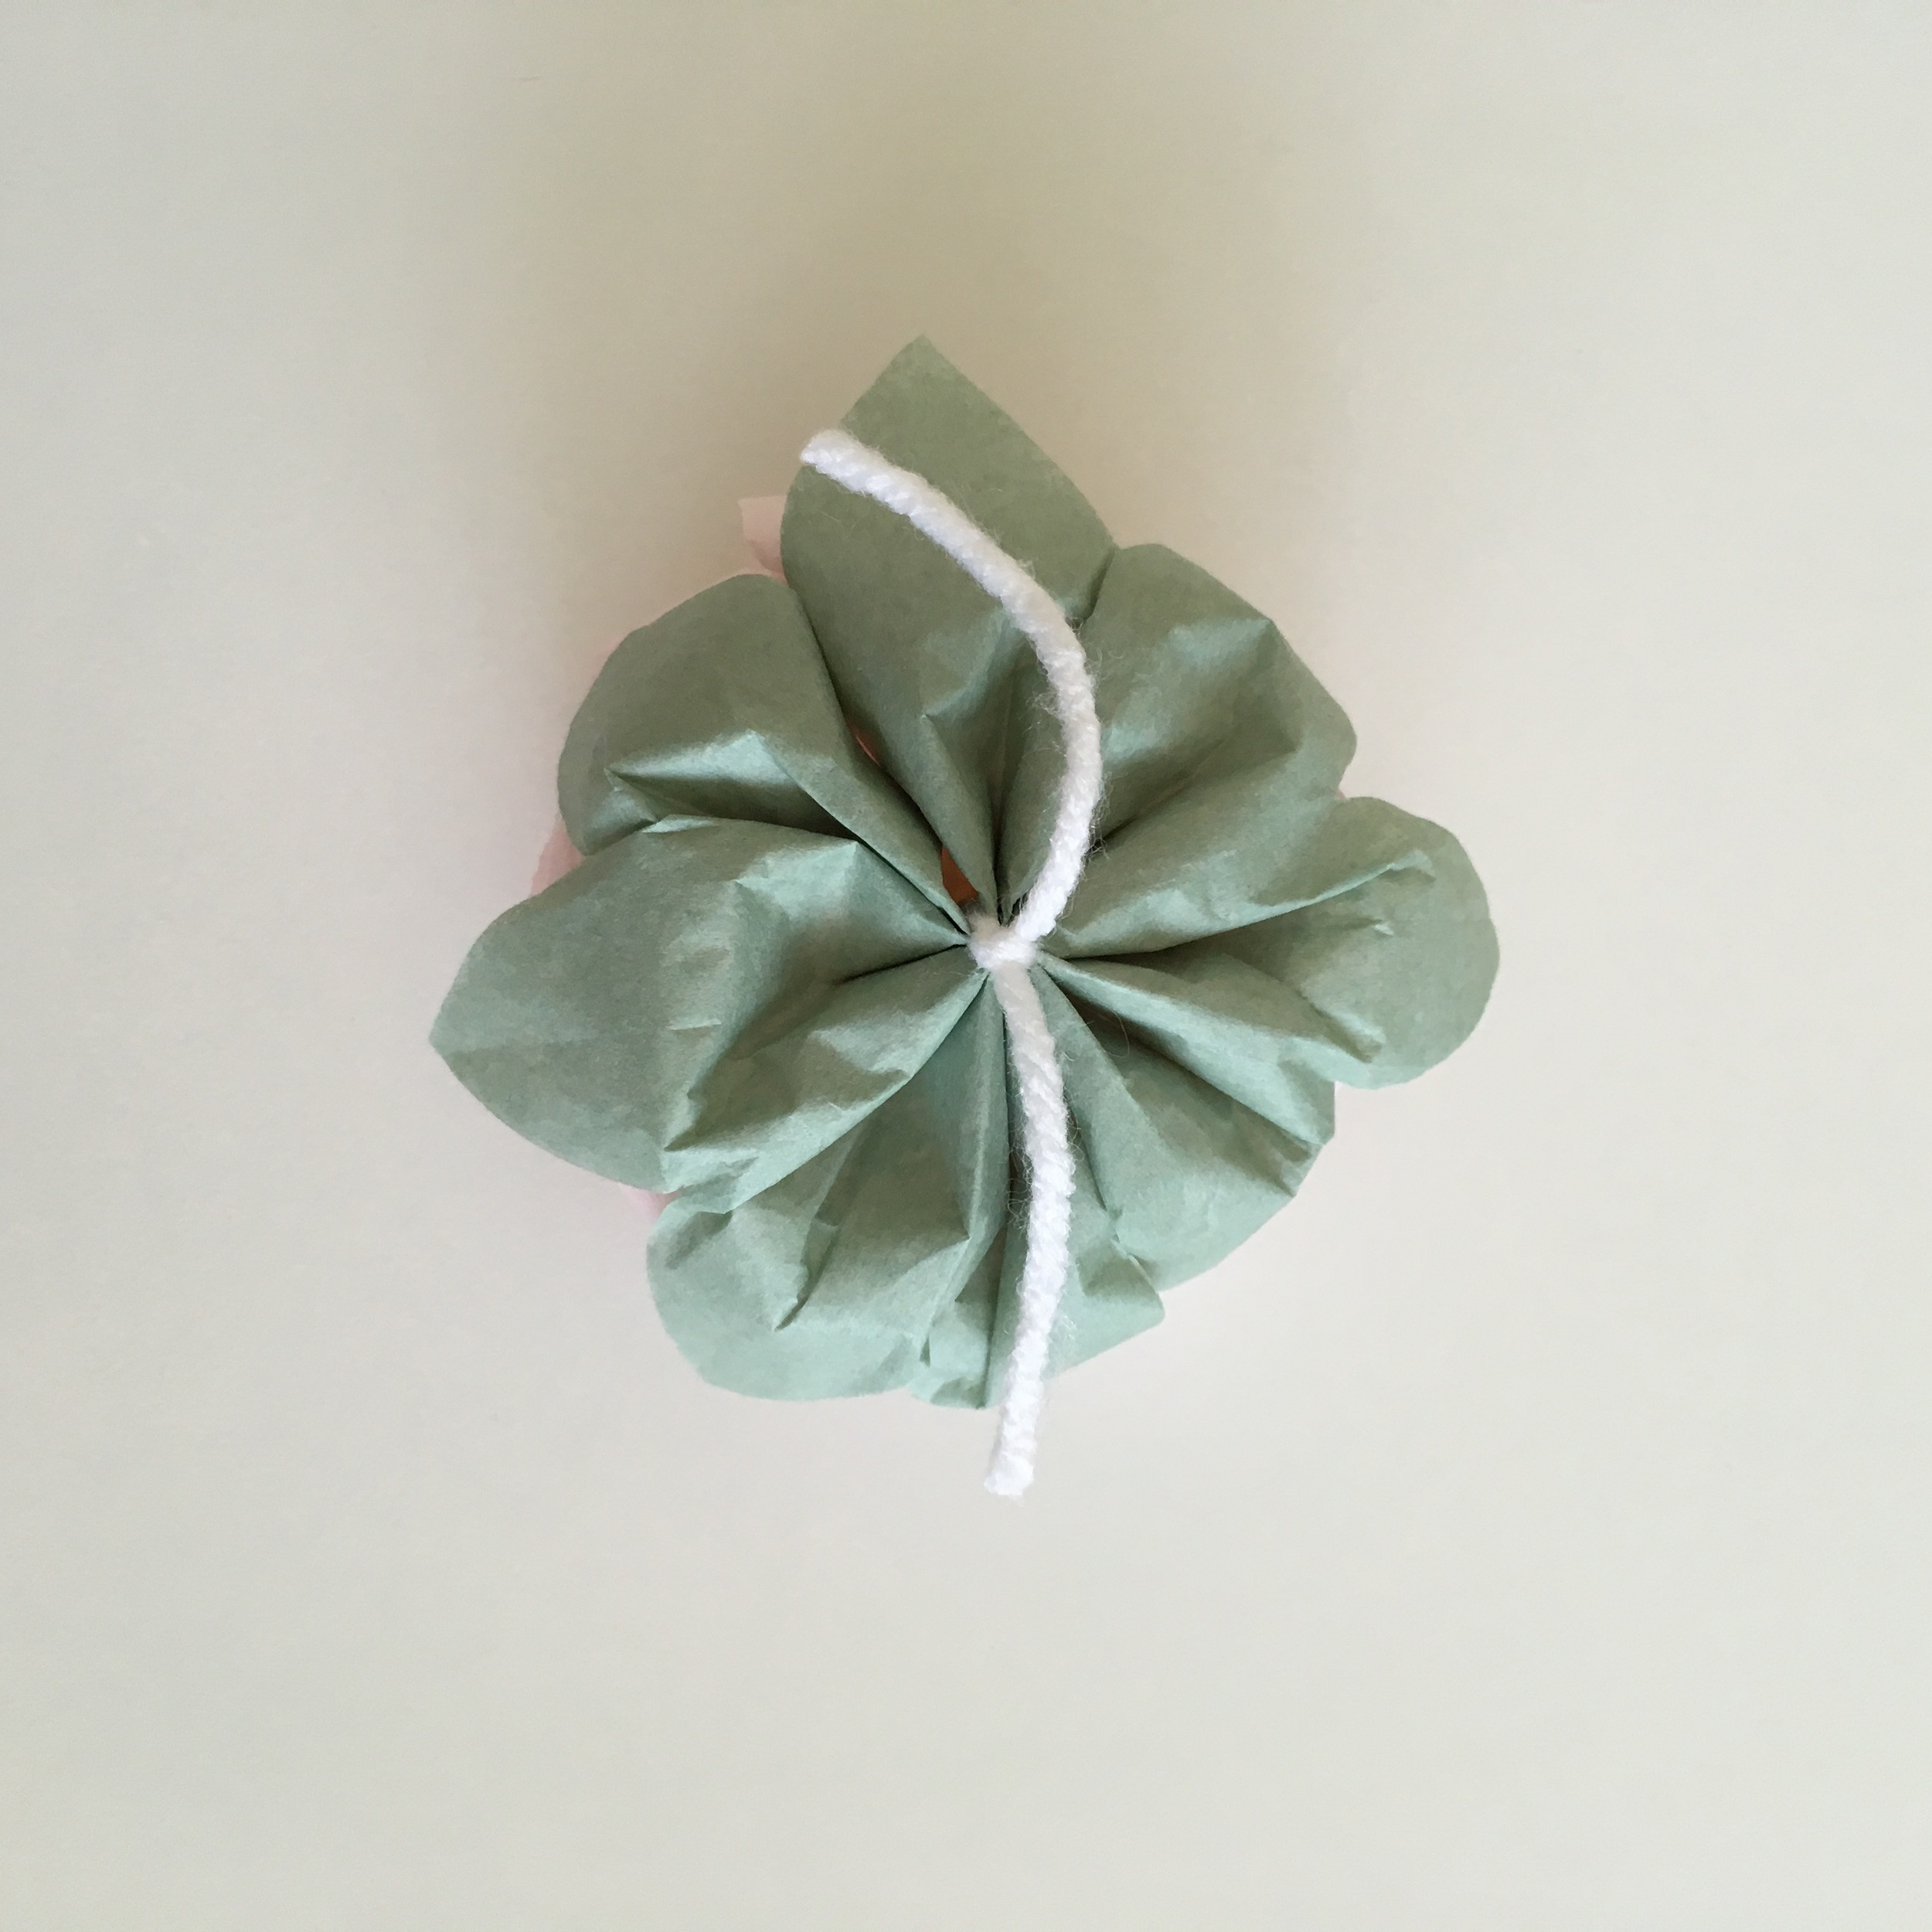 7. Once you are done fluffing up your paper flowers, turn it around.